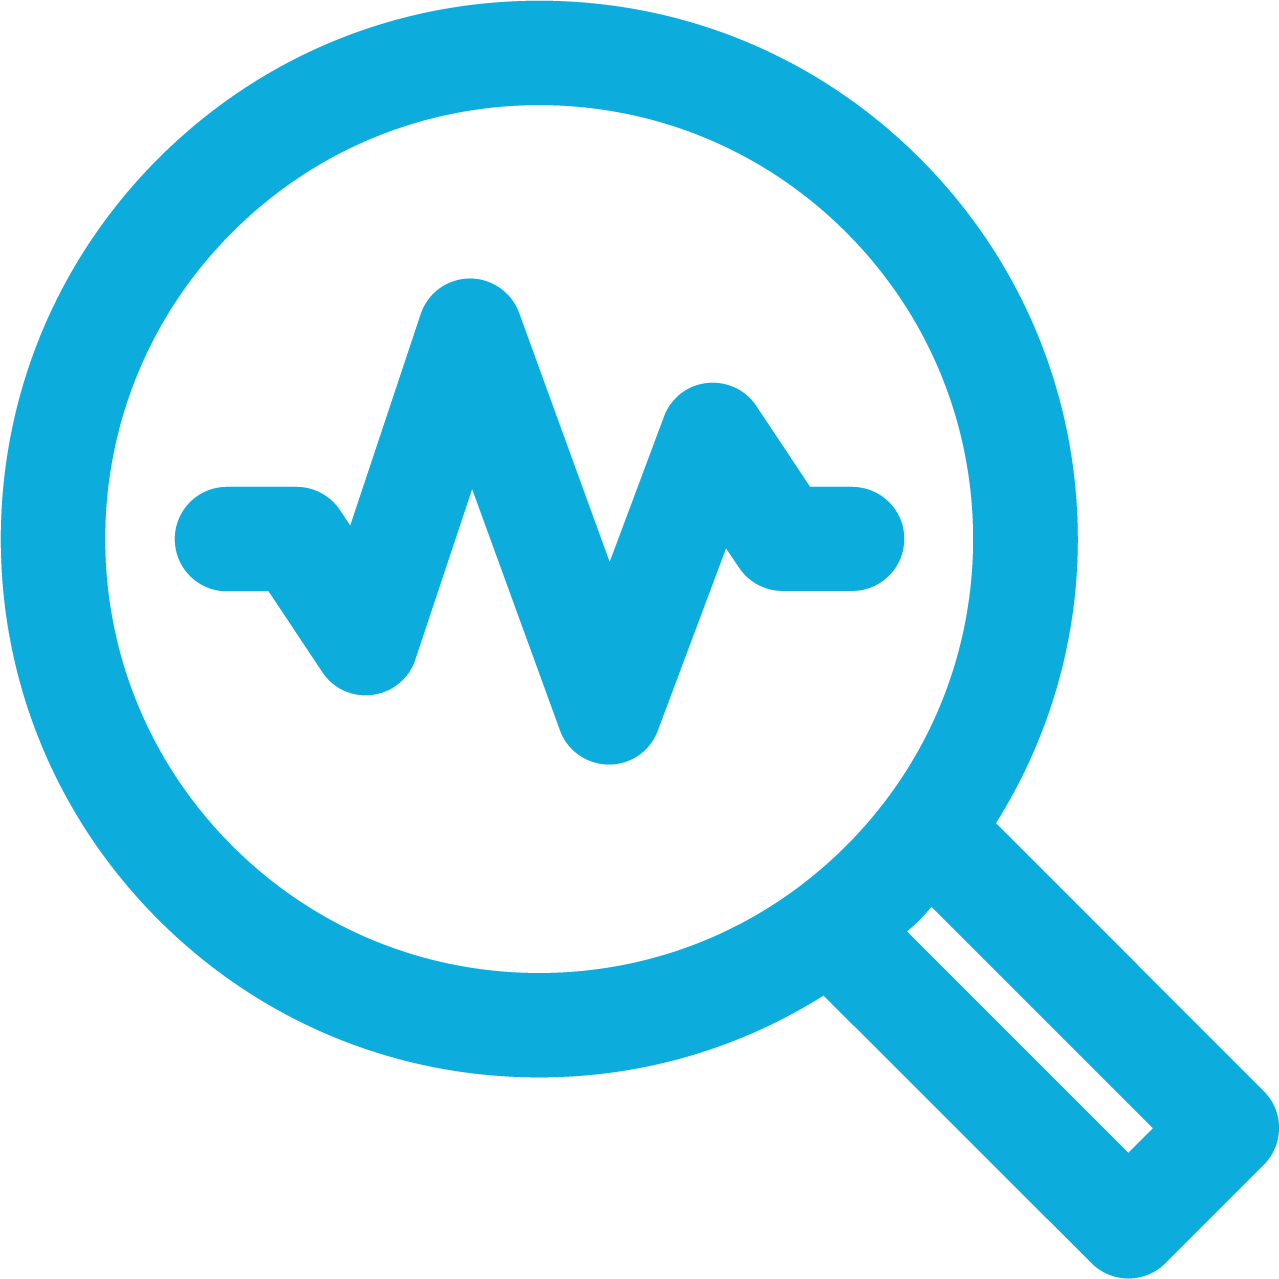 IT monitoring and search icon